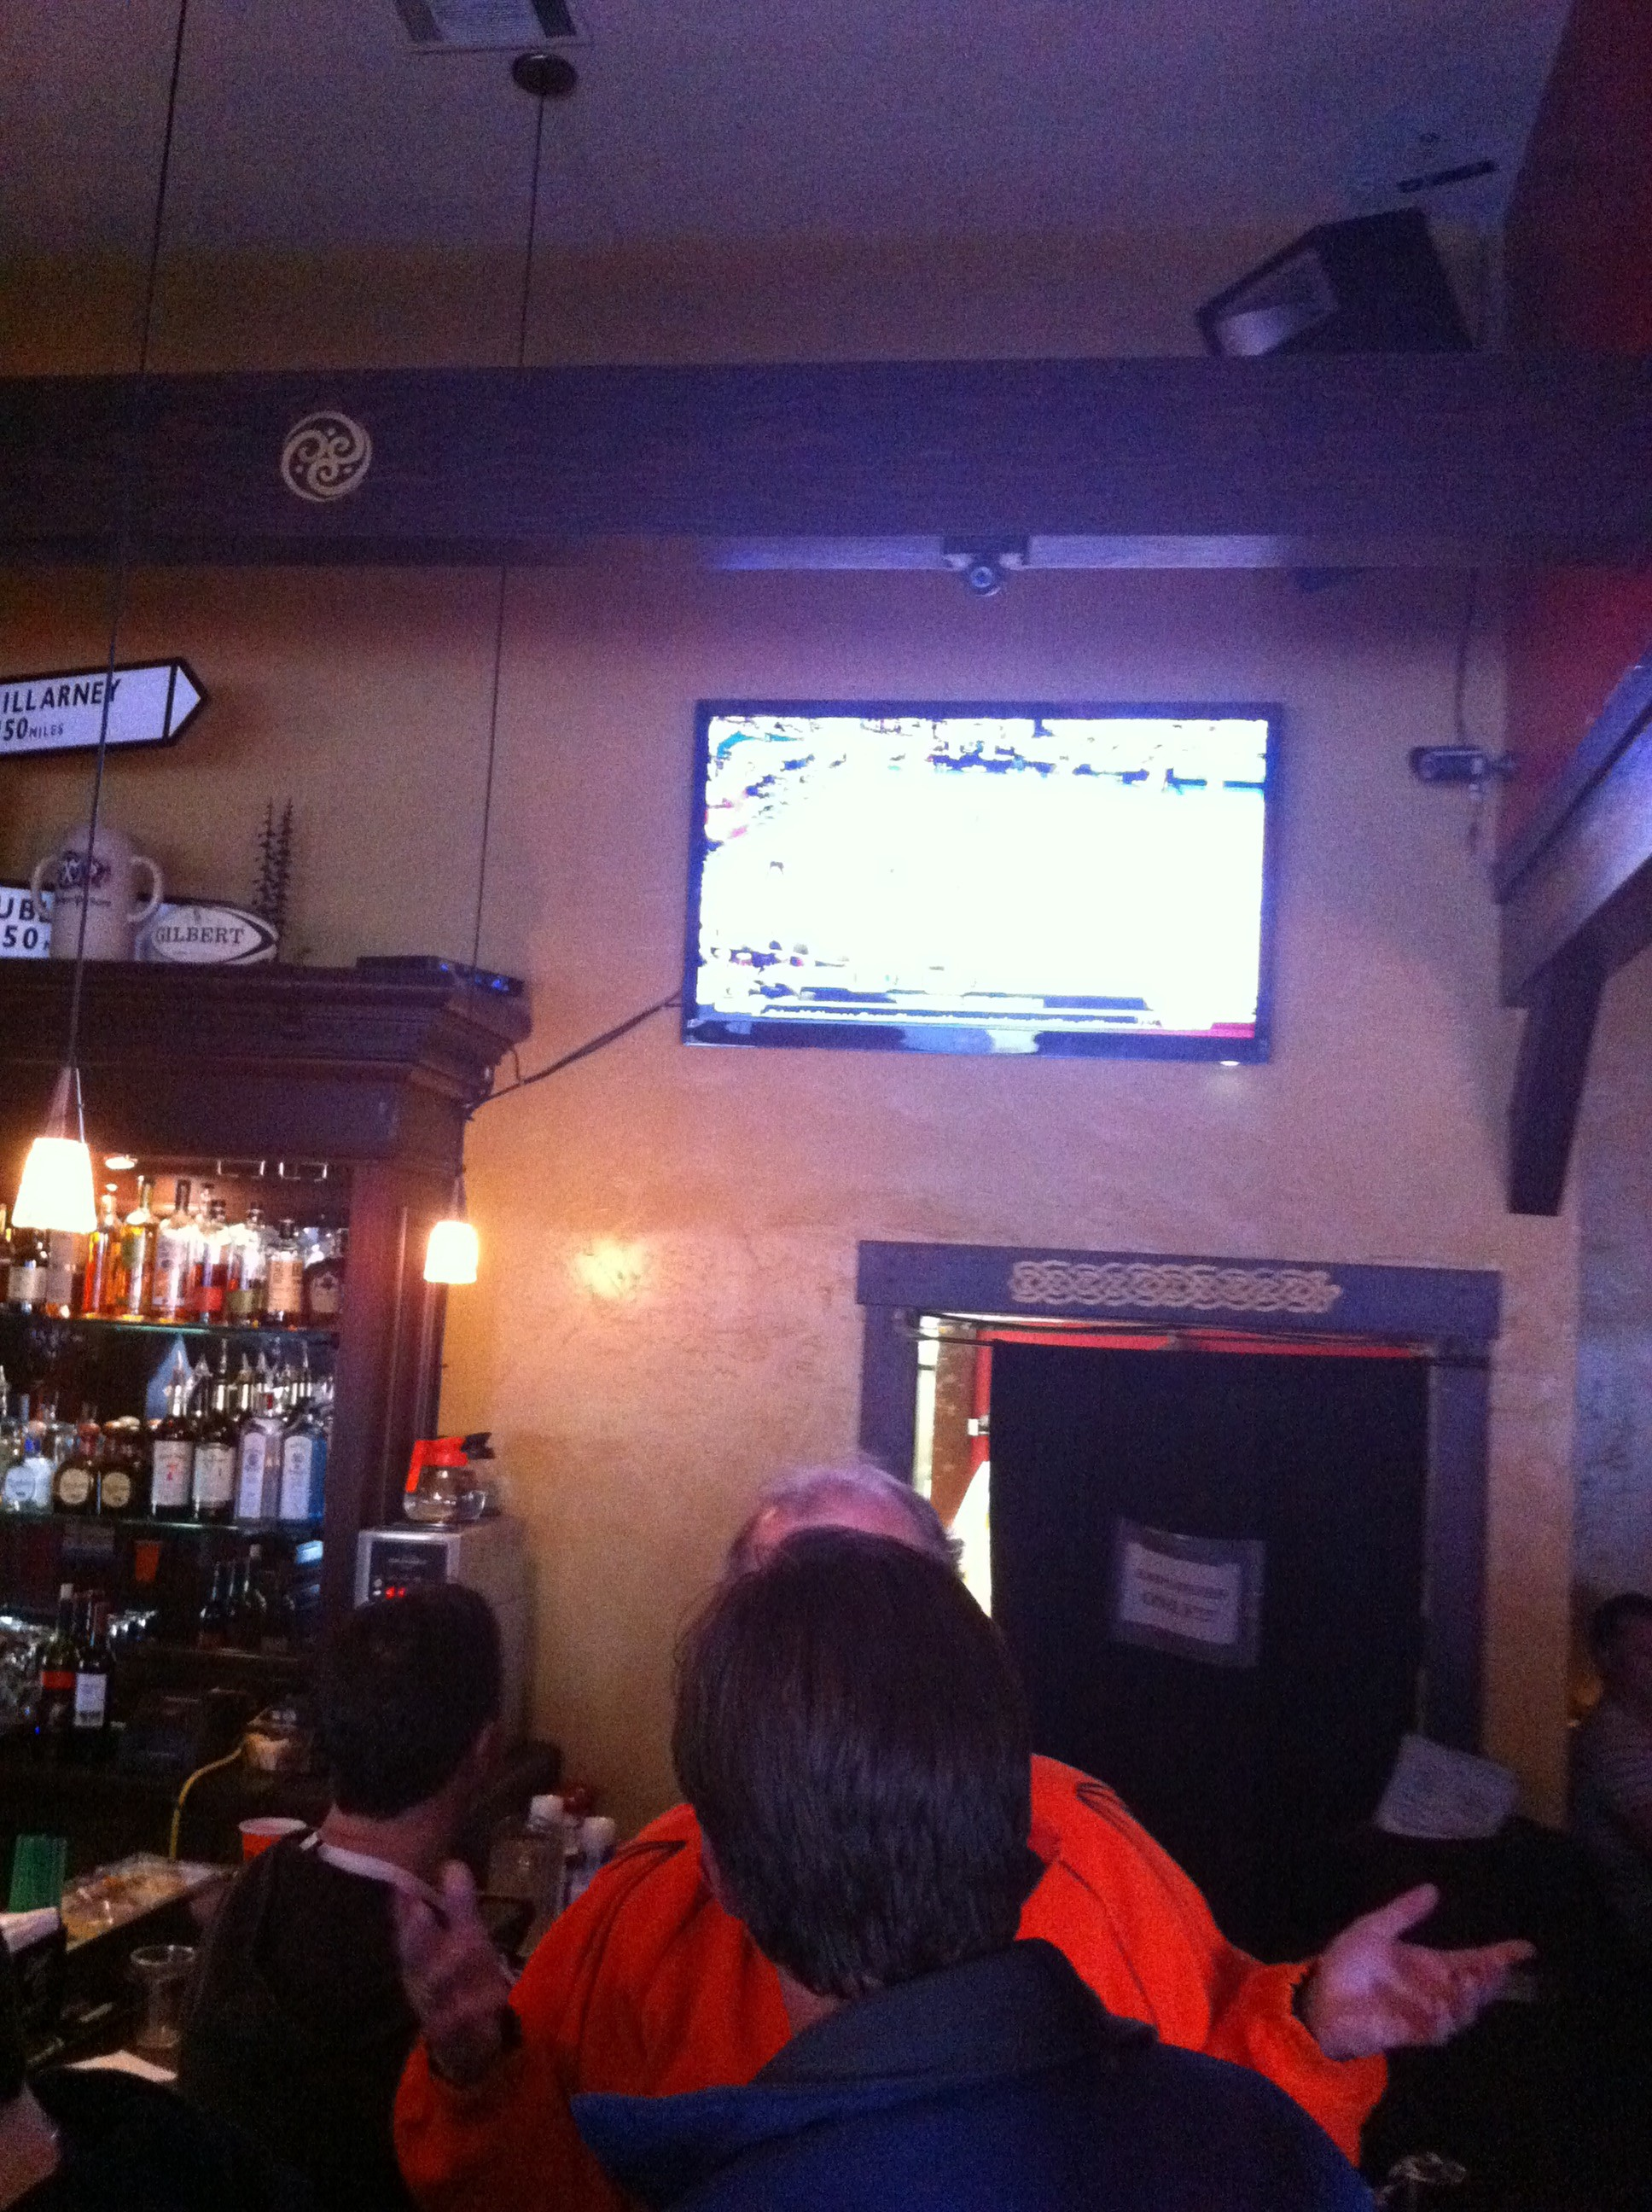 SceneTap's camera is mounted just above one of the TV screens at Polo Grounds